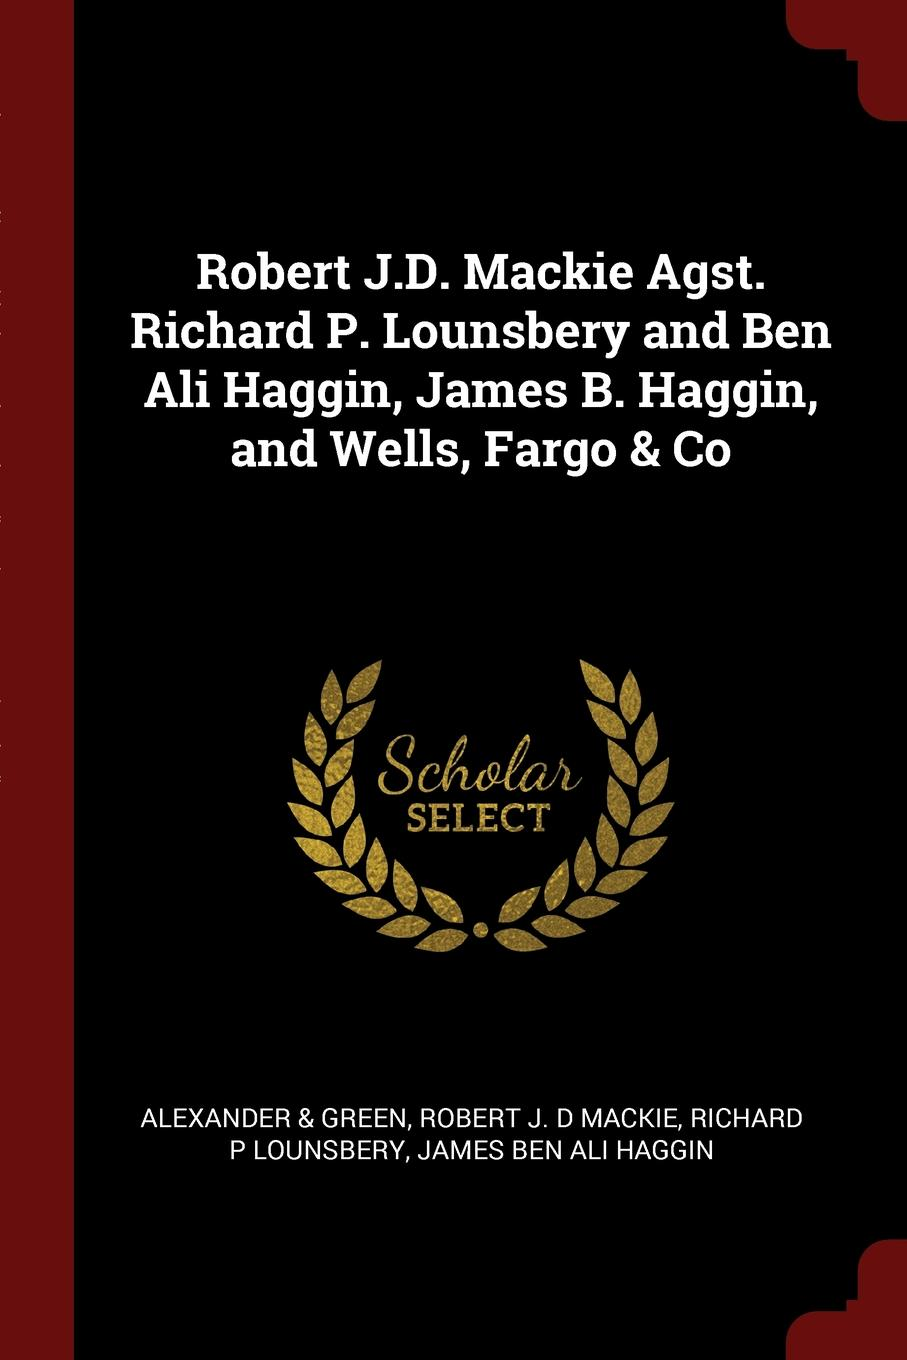 Alexander & Green, Robert J. D Mackie, Richard P Lounsbery Robert J.D. Mackie Agst. Richard P. Lounsbery and Ben Ali Haggin, James B. Haggin, and Wells, Fargo . Co